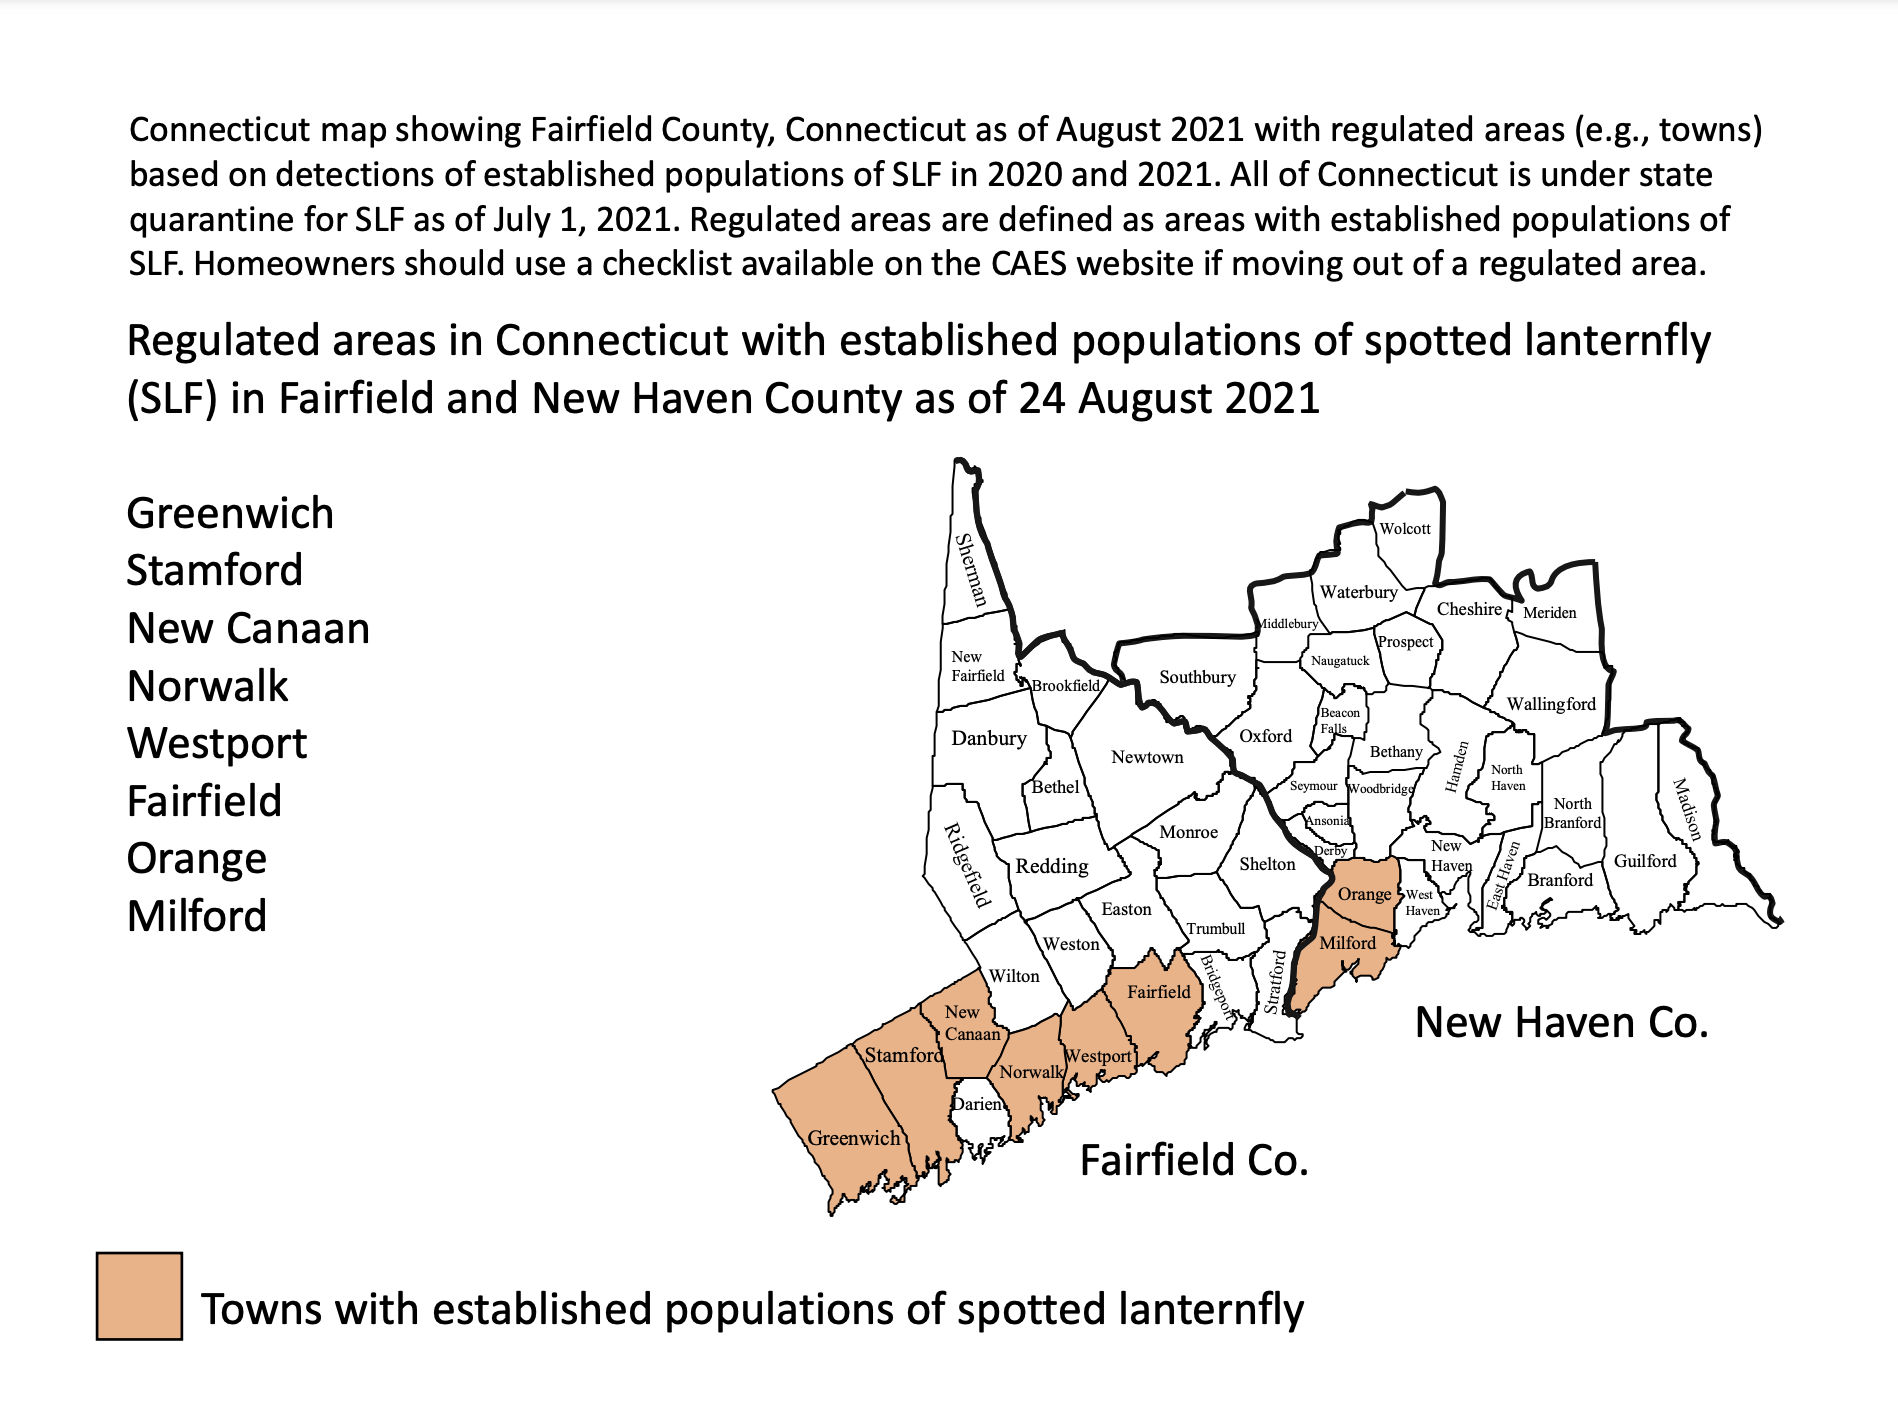 map of spotted lanternfly locations in Connecticut